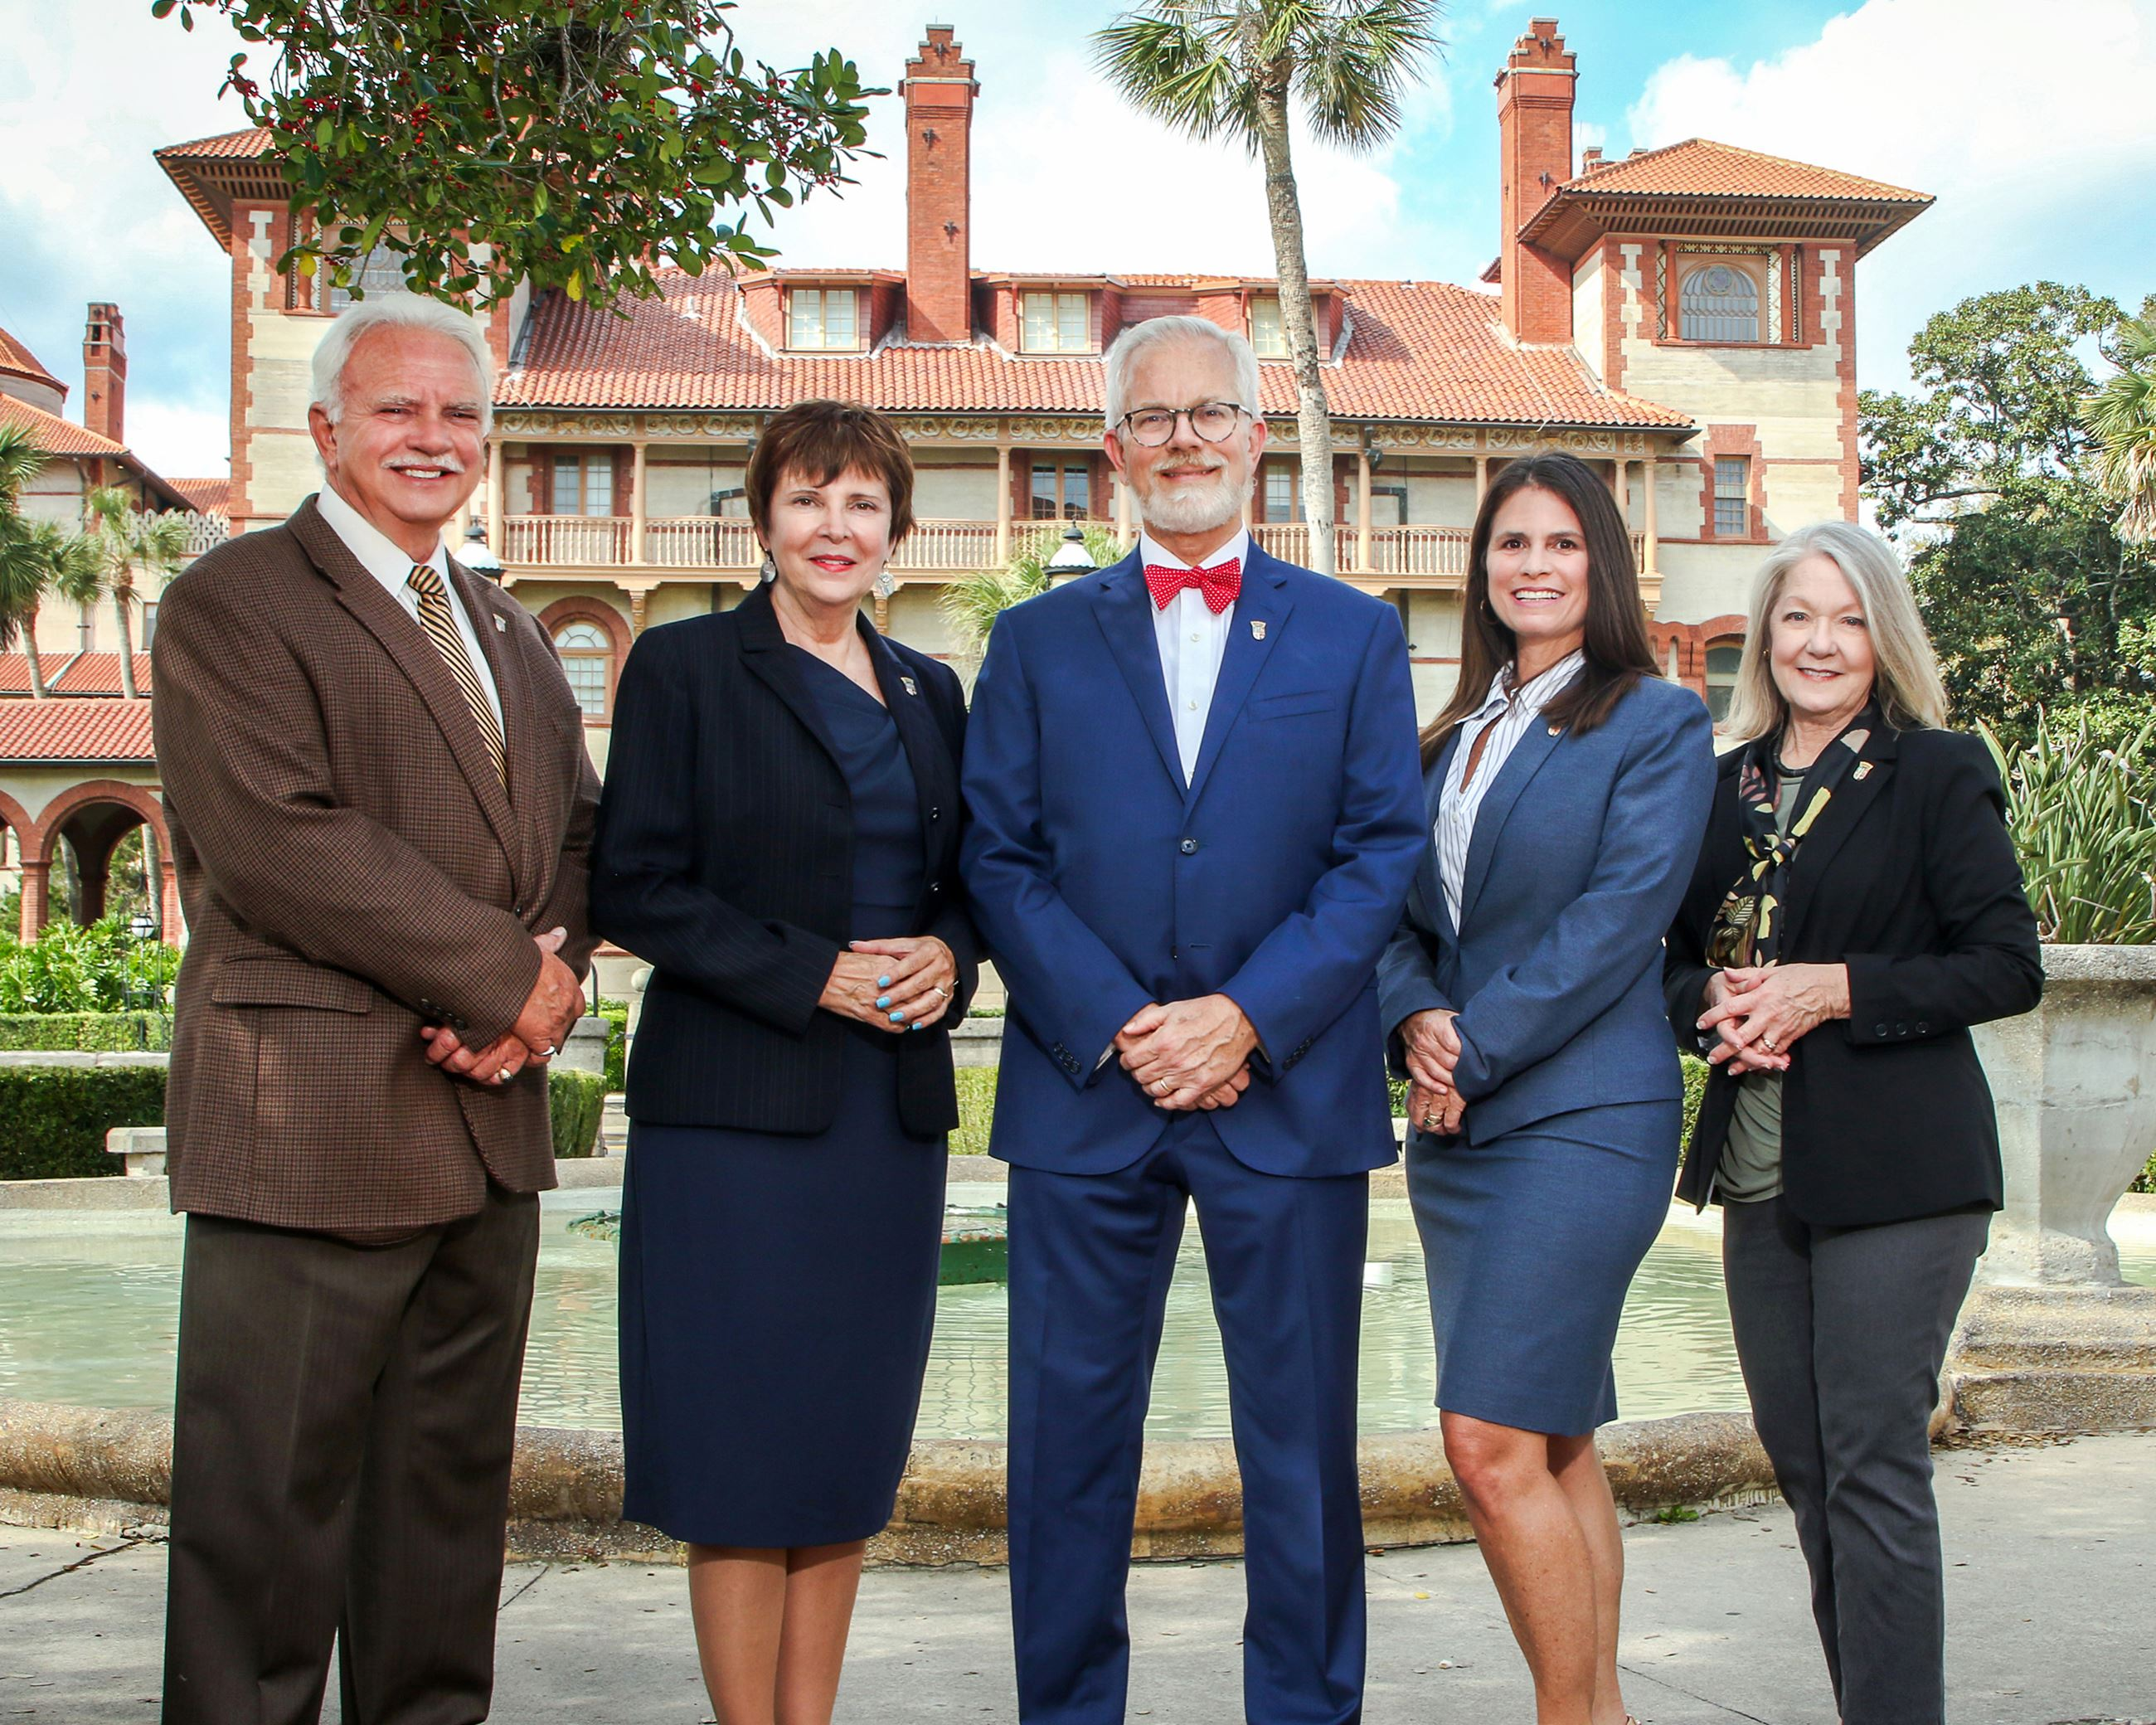 5 people standing in front of a fountain with Flagler College building behind